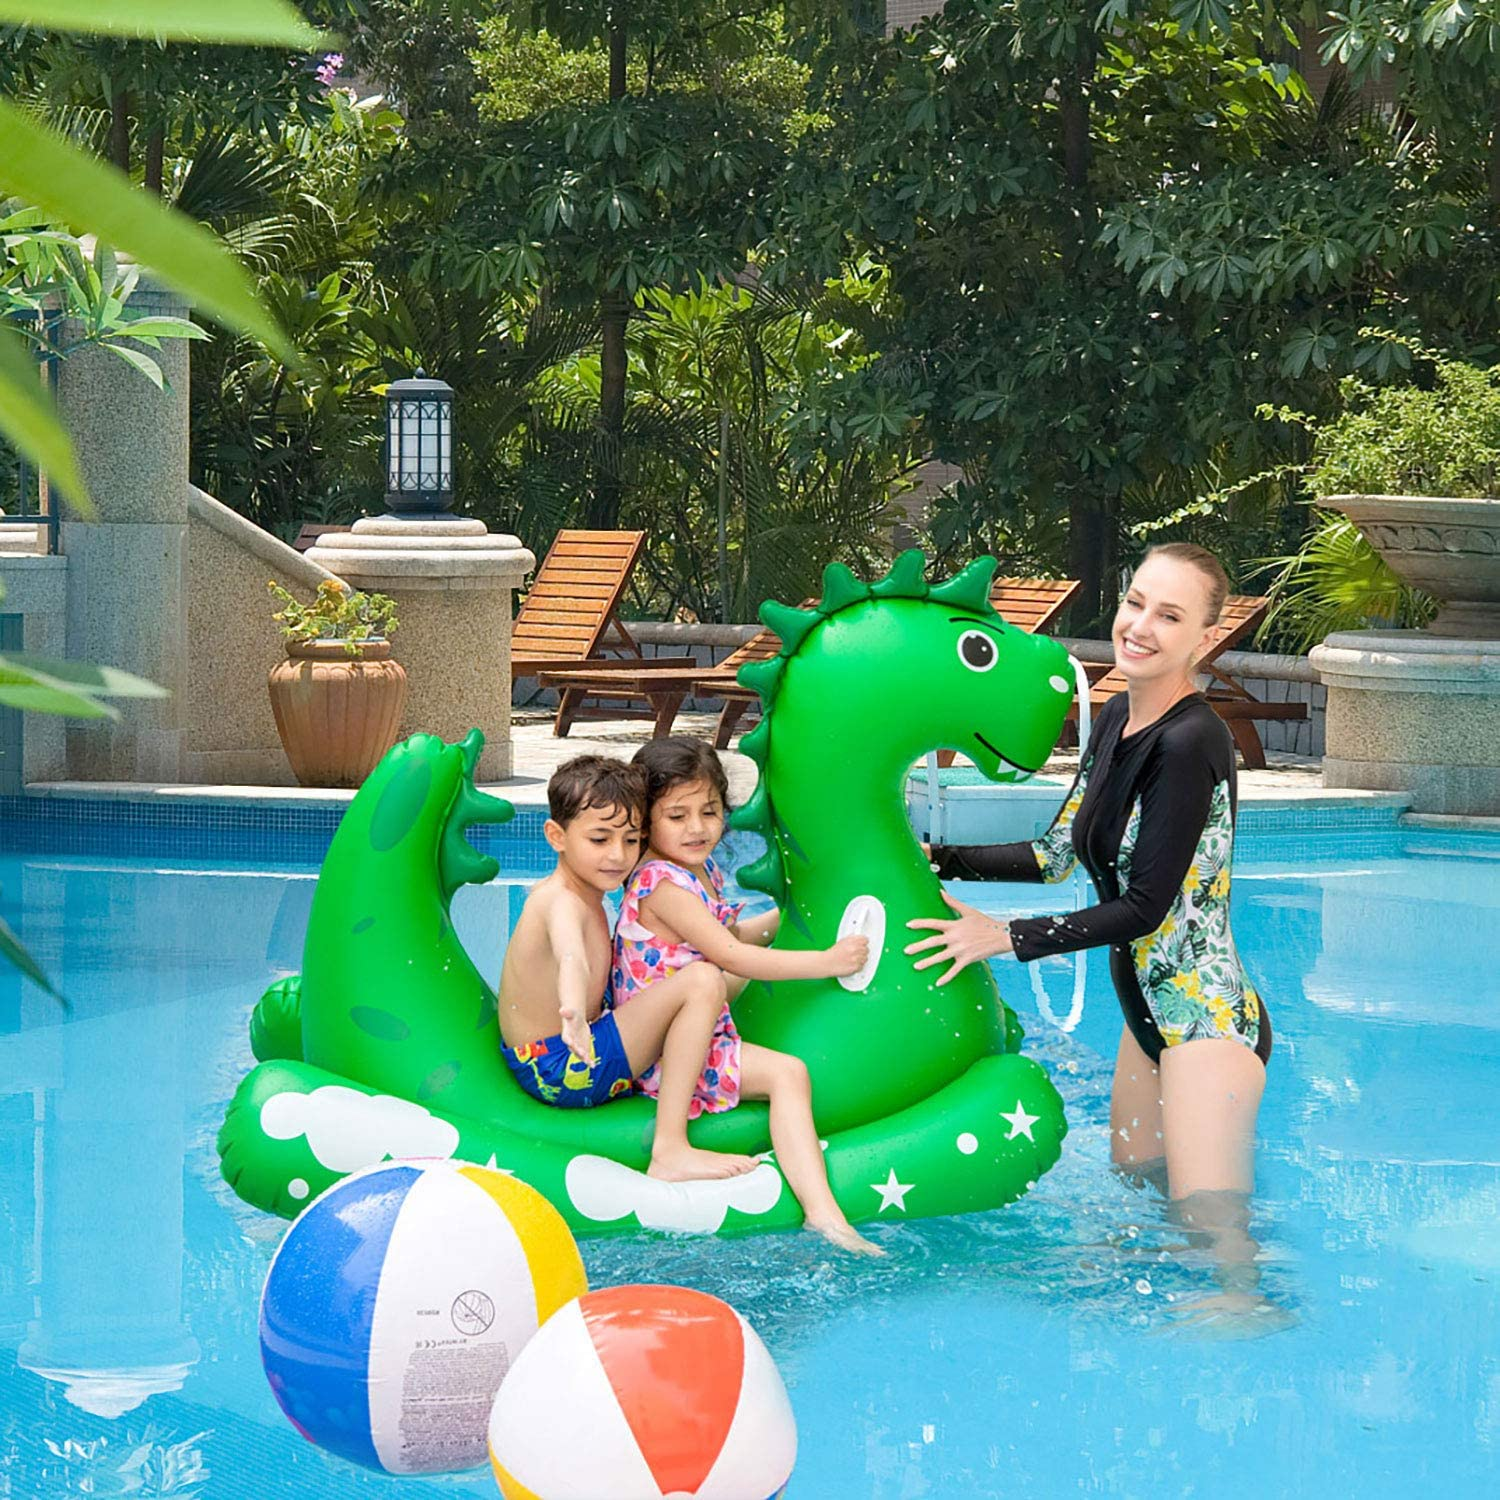 Spray Water Toys for Outdoor Lawn Backyard Summer Swimming Pool Party Toys Inflatable Pool Float for Kids Adults Kids Sprinklers Pool Toys Ride-on Dinosaur Splash Pool Raft with 2 Handles